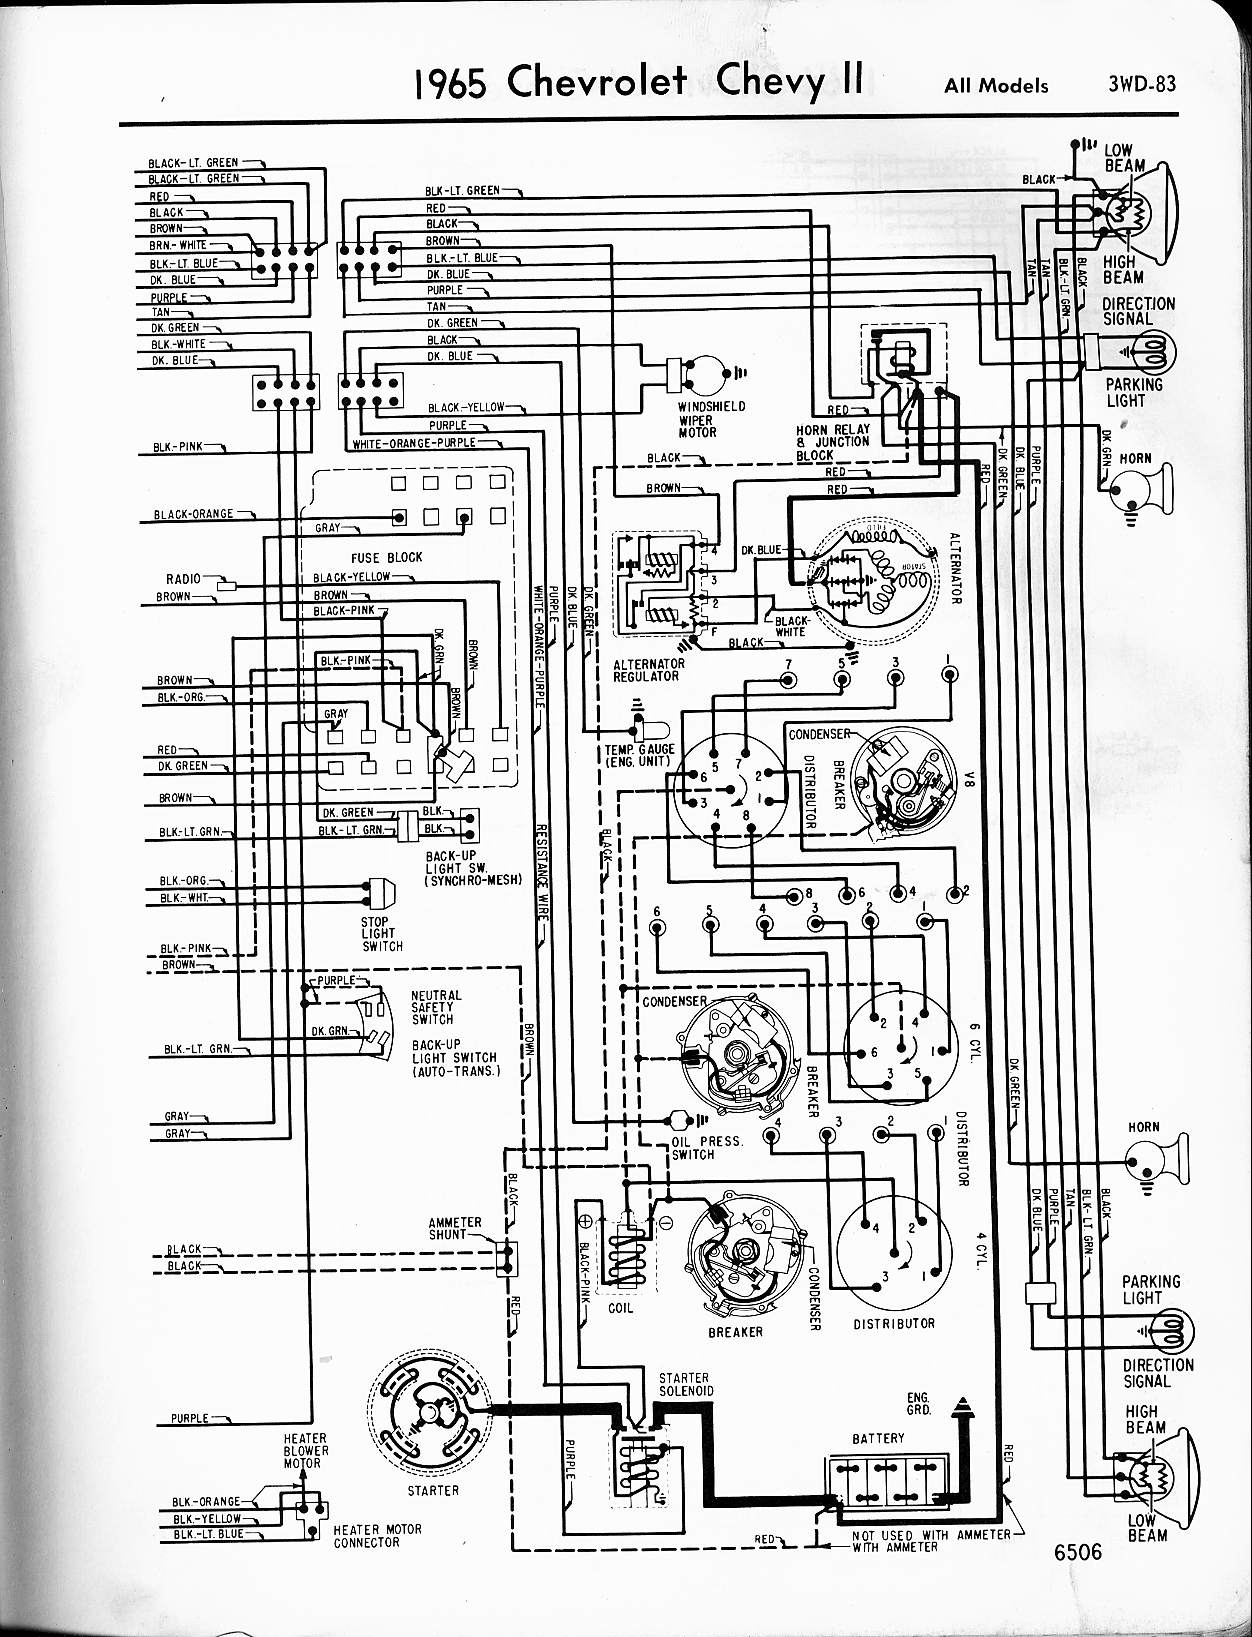 1968 Cadillac Wiring Schematics Electrical Diagram 2004 Radio Custom Turn Signal Diy Enthusiasts 1965 Directional Switch